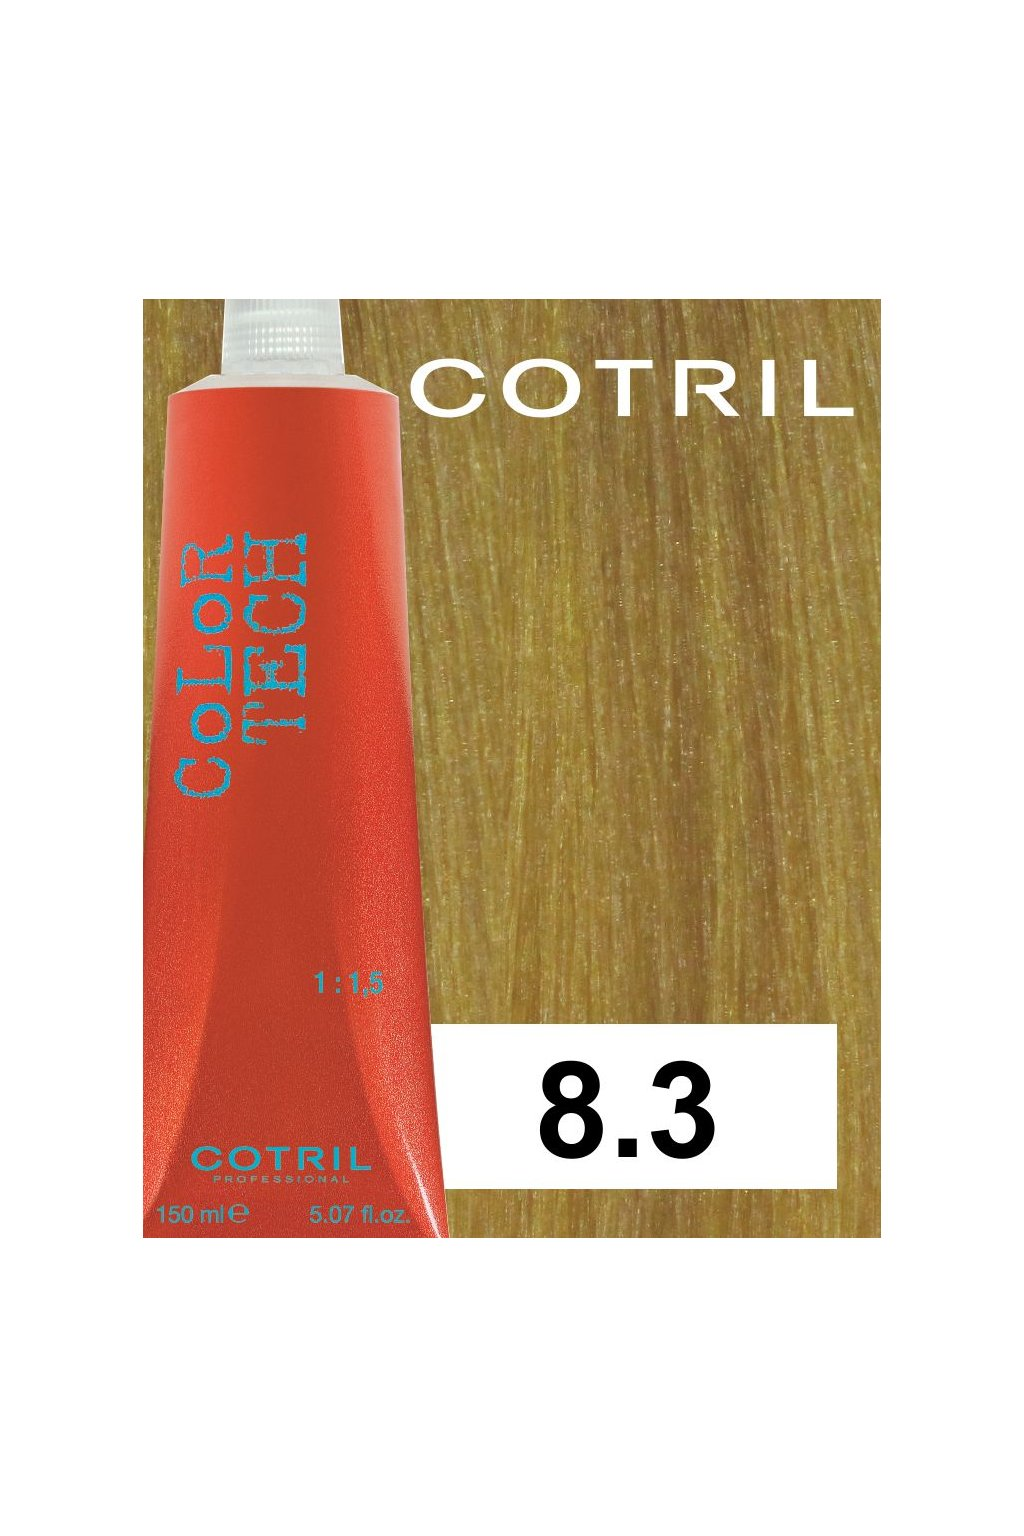 8 3 ct cotril